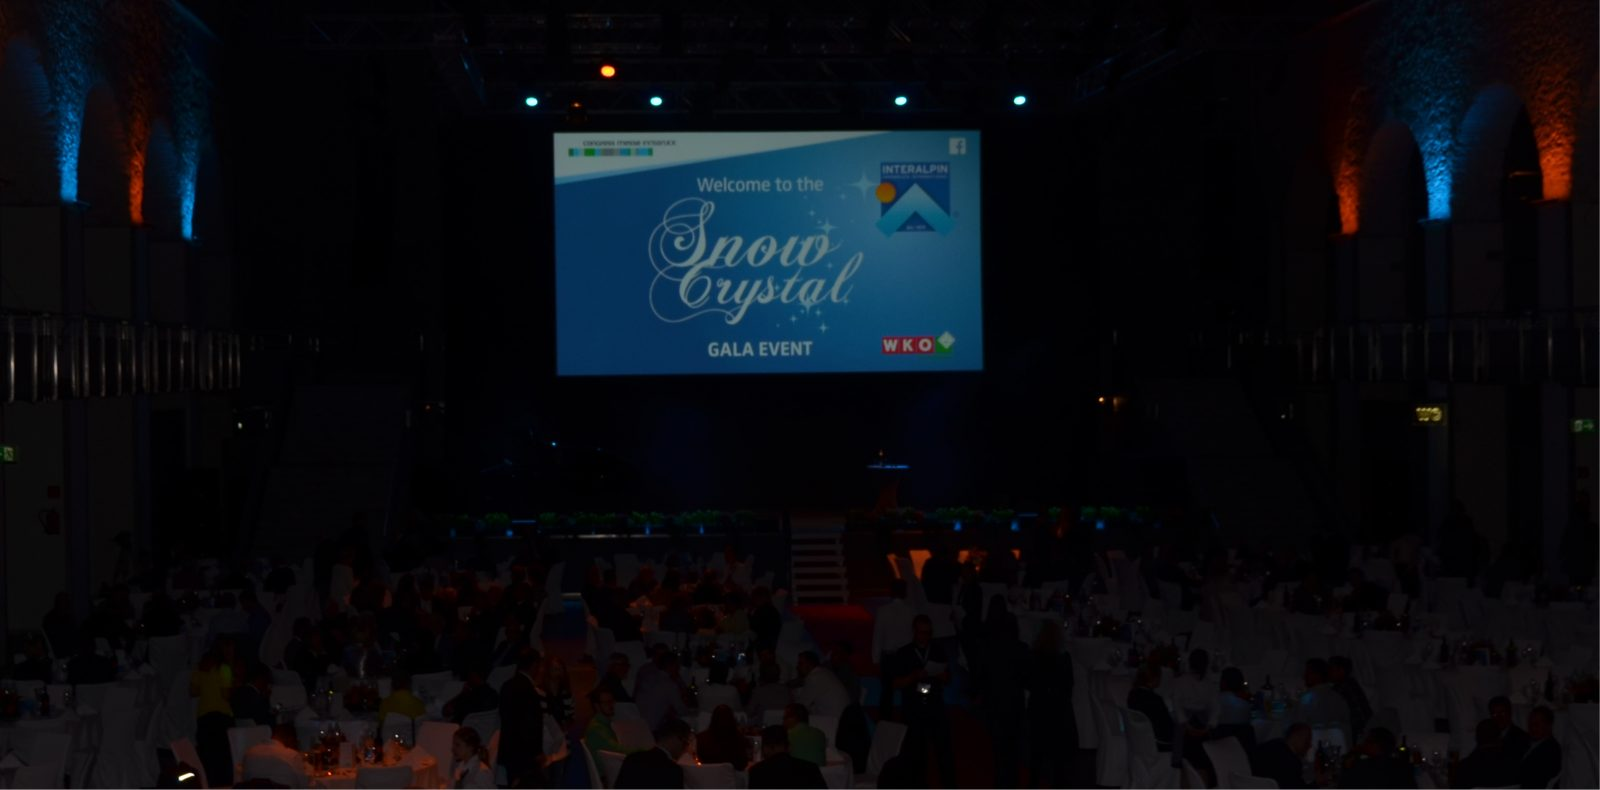 Das Snow Crystal Gala Event in der Dogana Innsbruck.